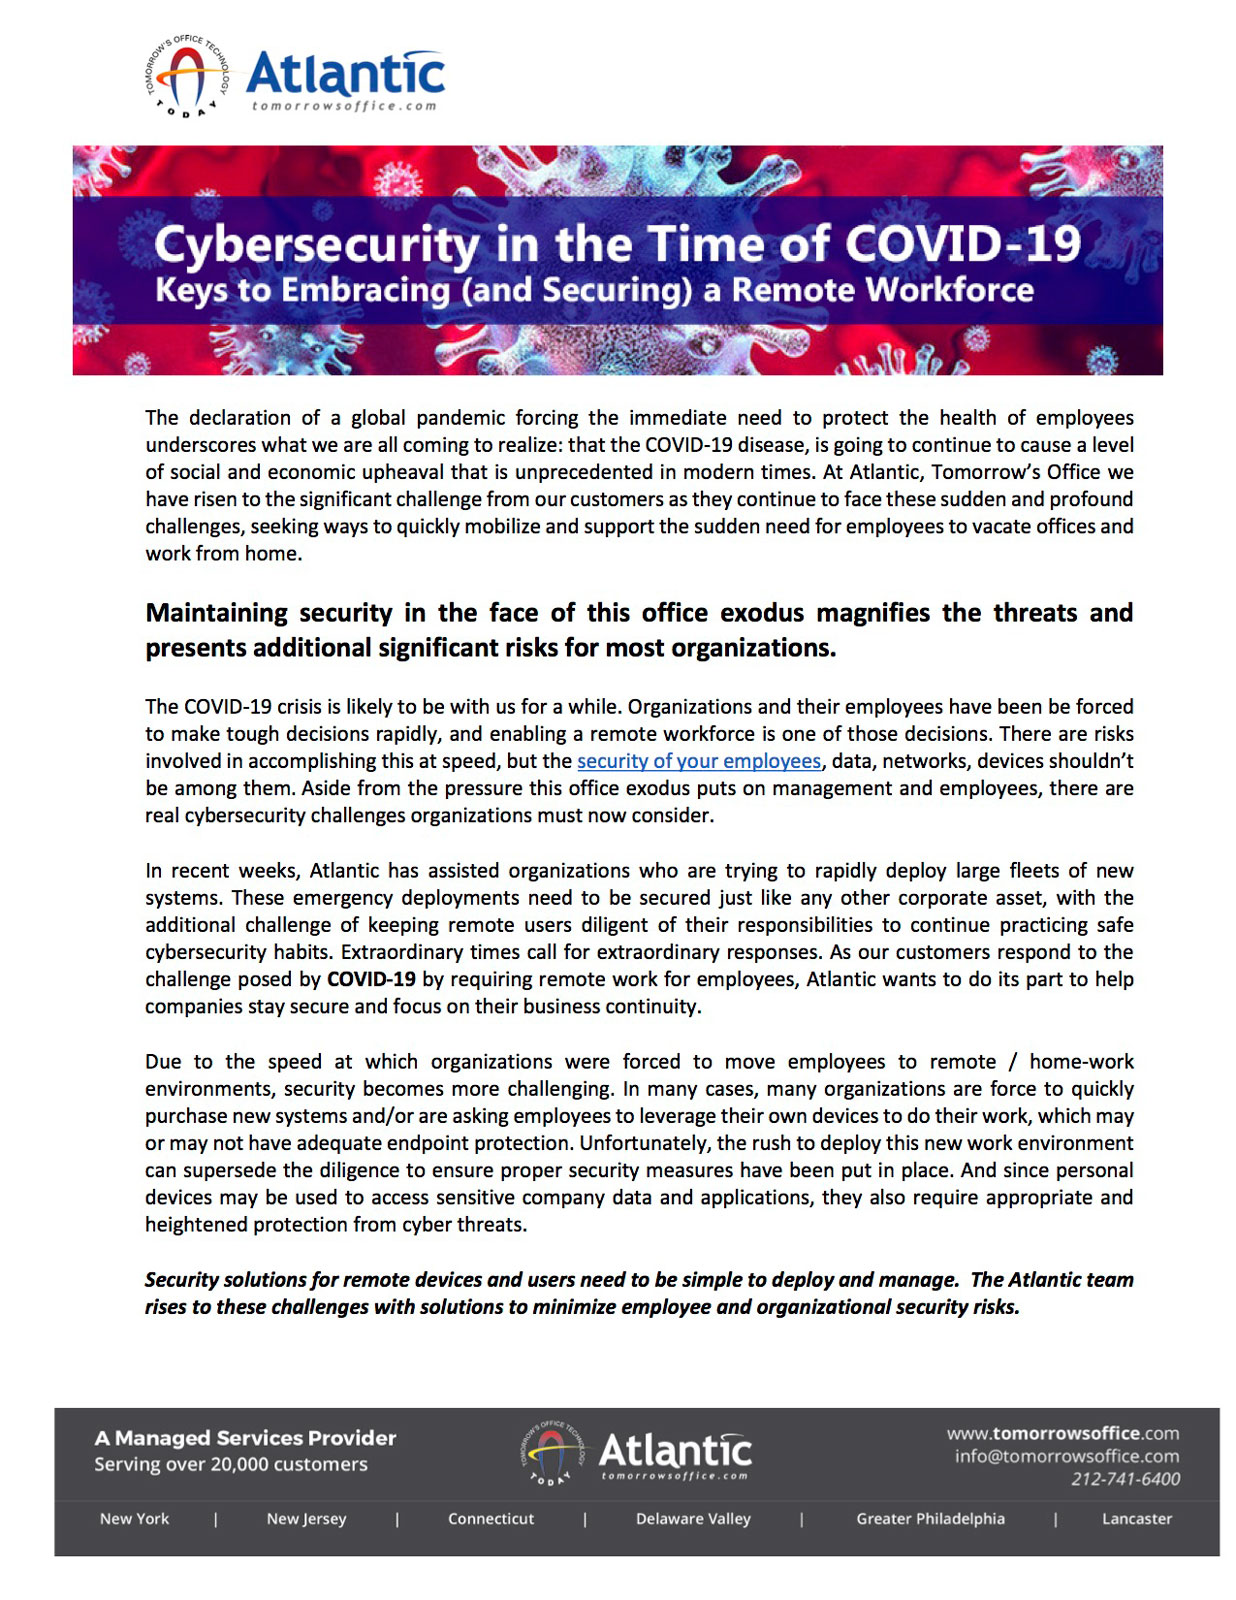 Cybersecurity in the time of COVID-19 that reads: keys to embracing and securing a remote workforce.